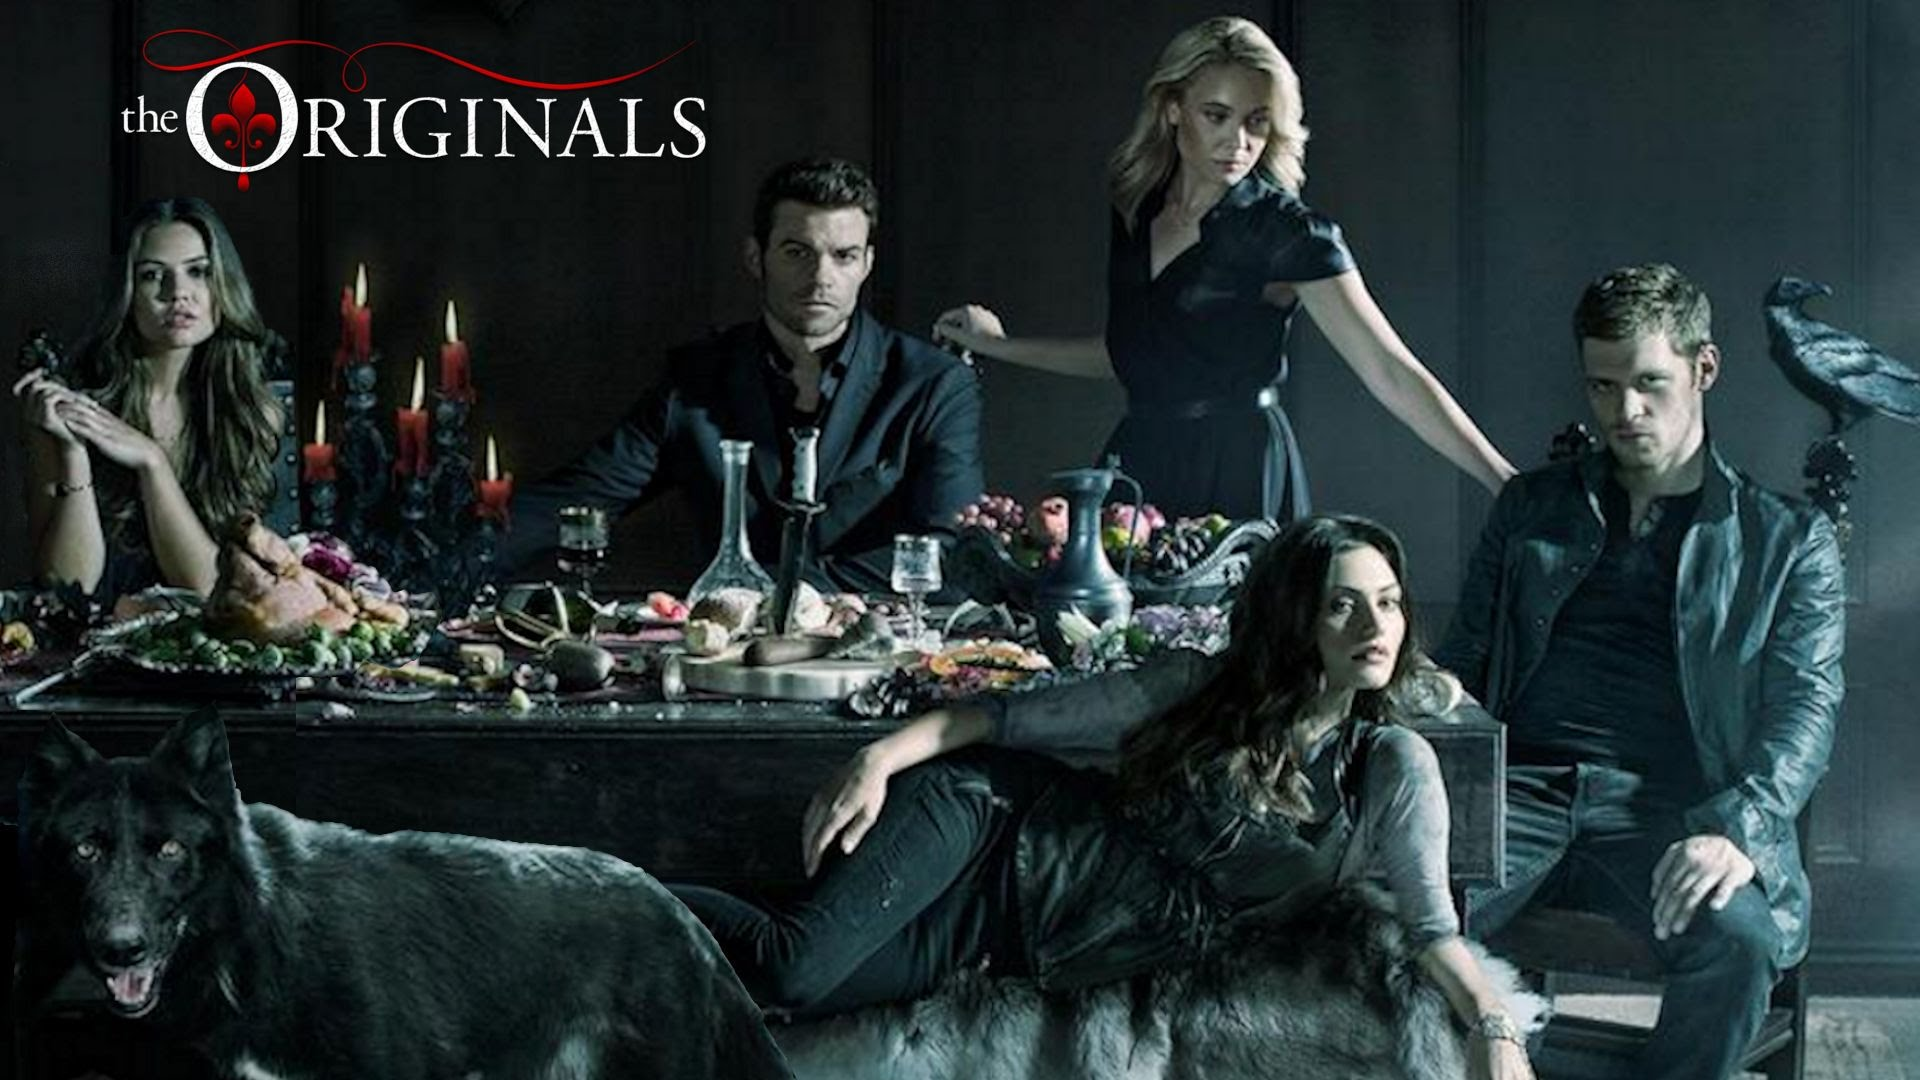 Vampire Diaries Hd Wallpapers 1366x768 Cw S The Originals Looking For Men Amp Women To Play